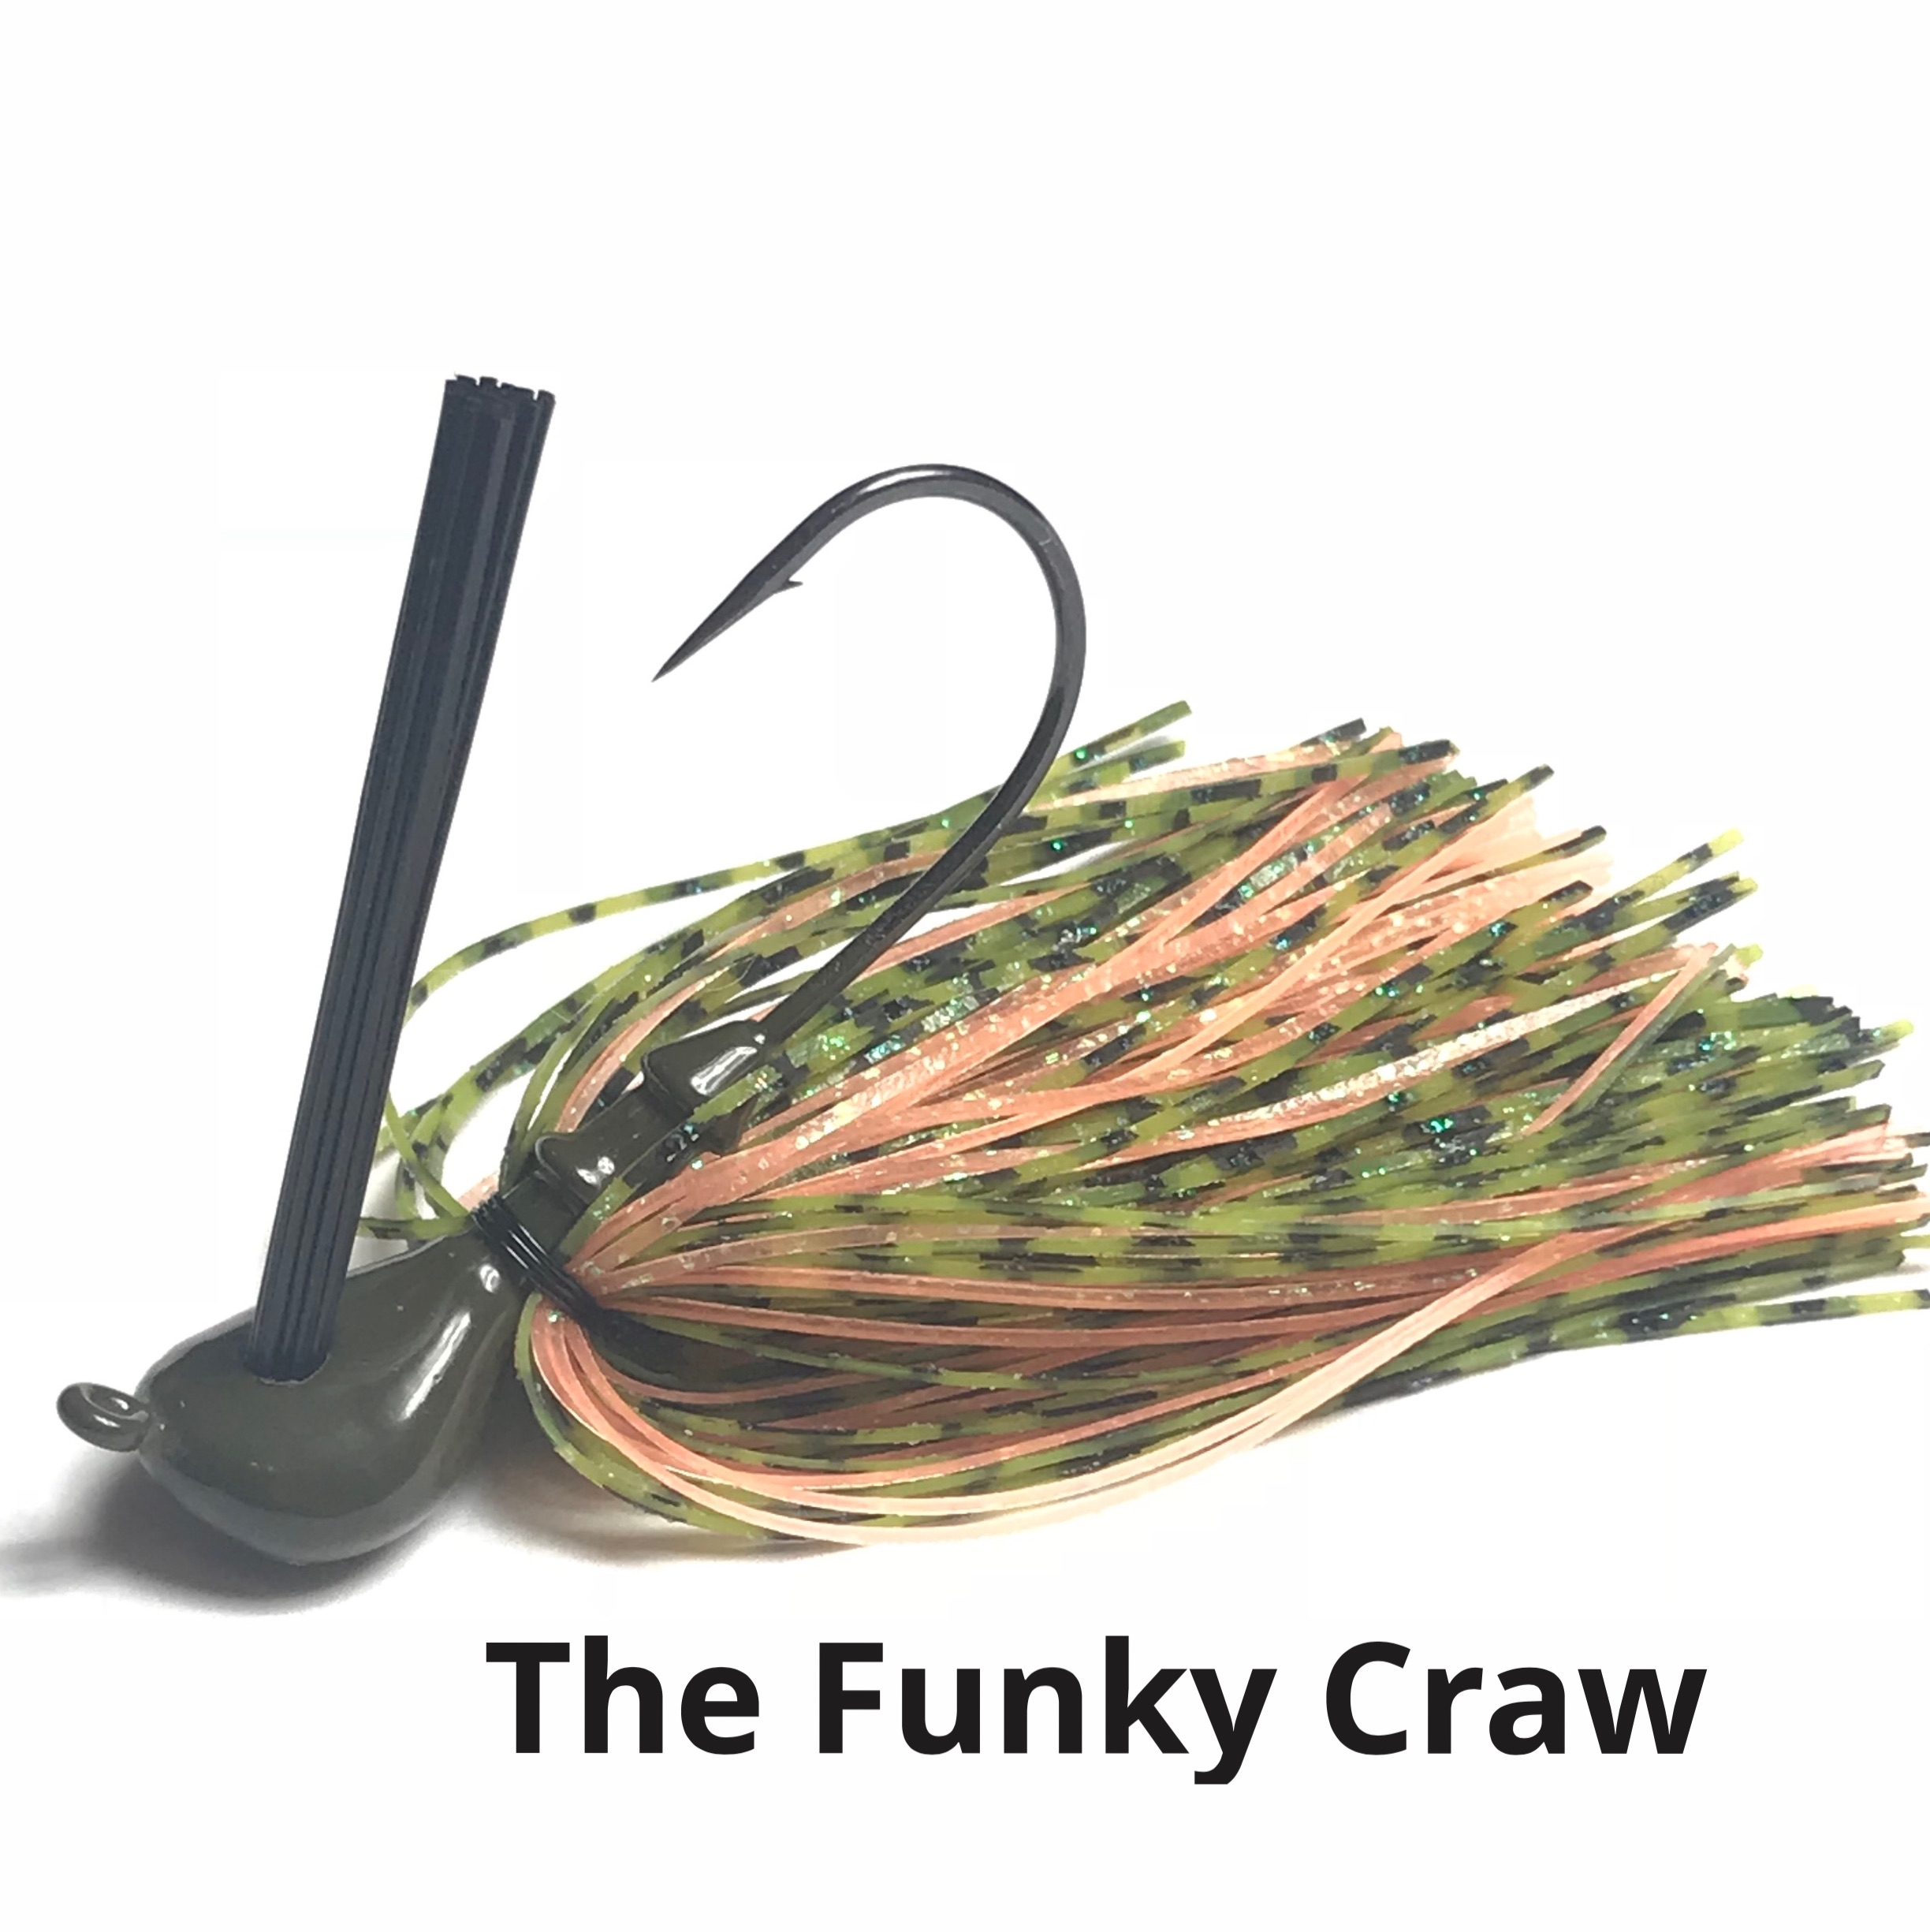 The Funky Craw